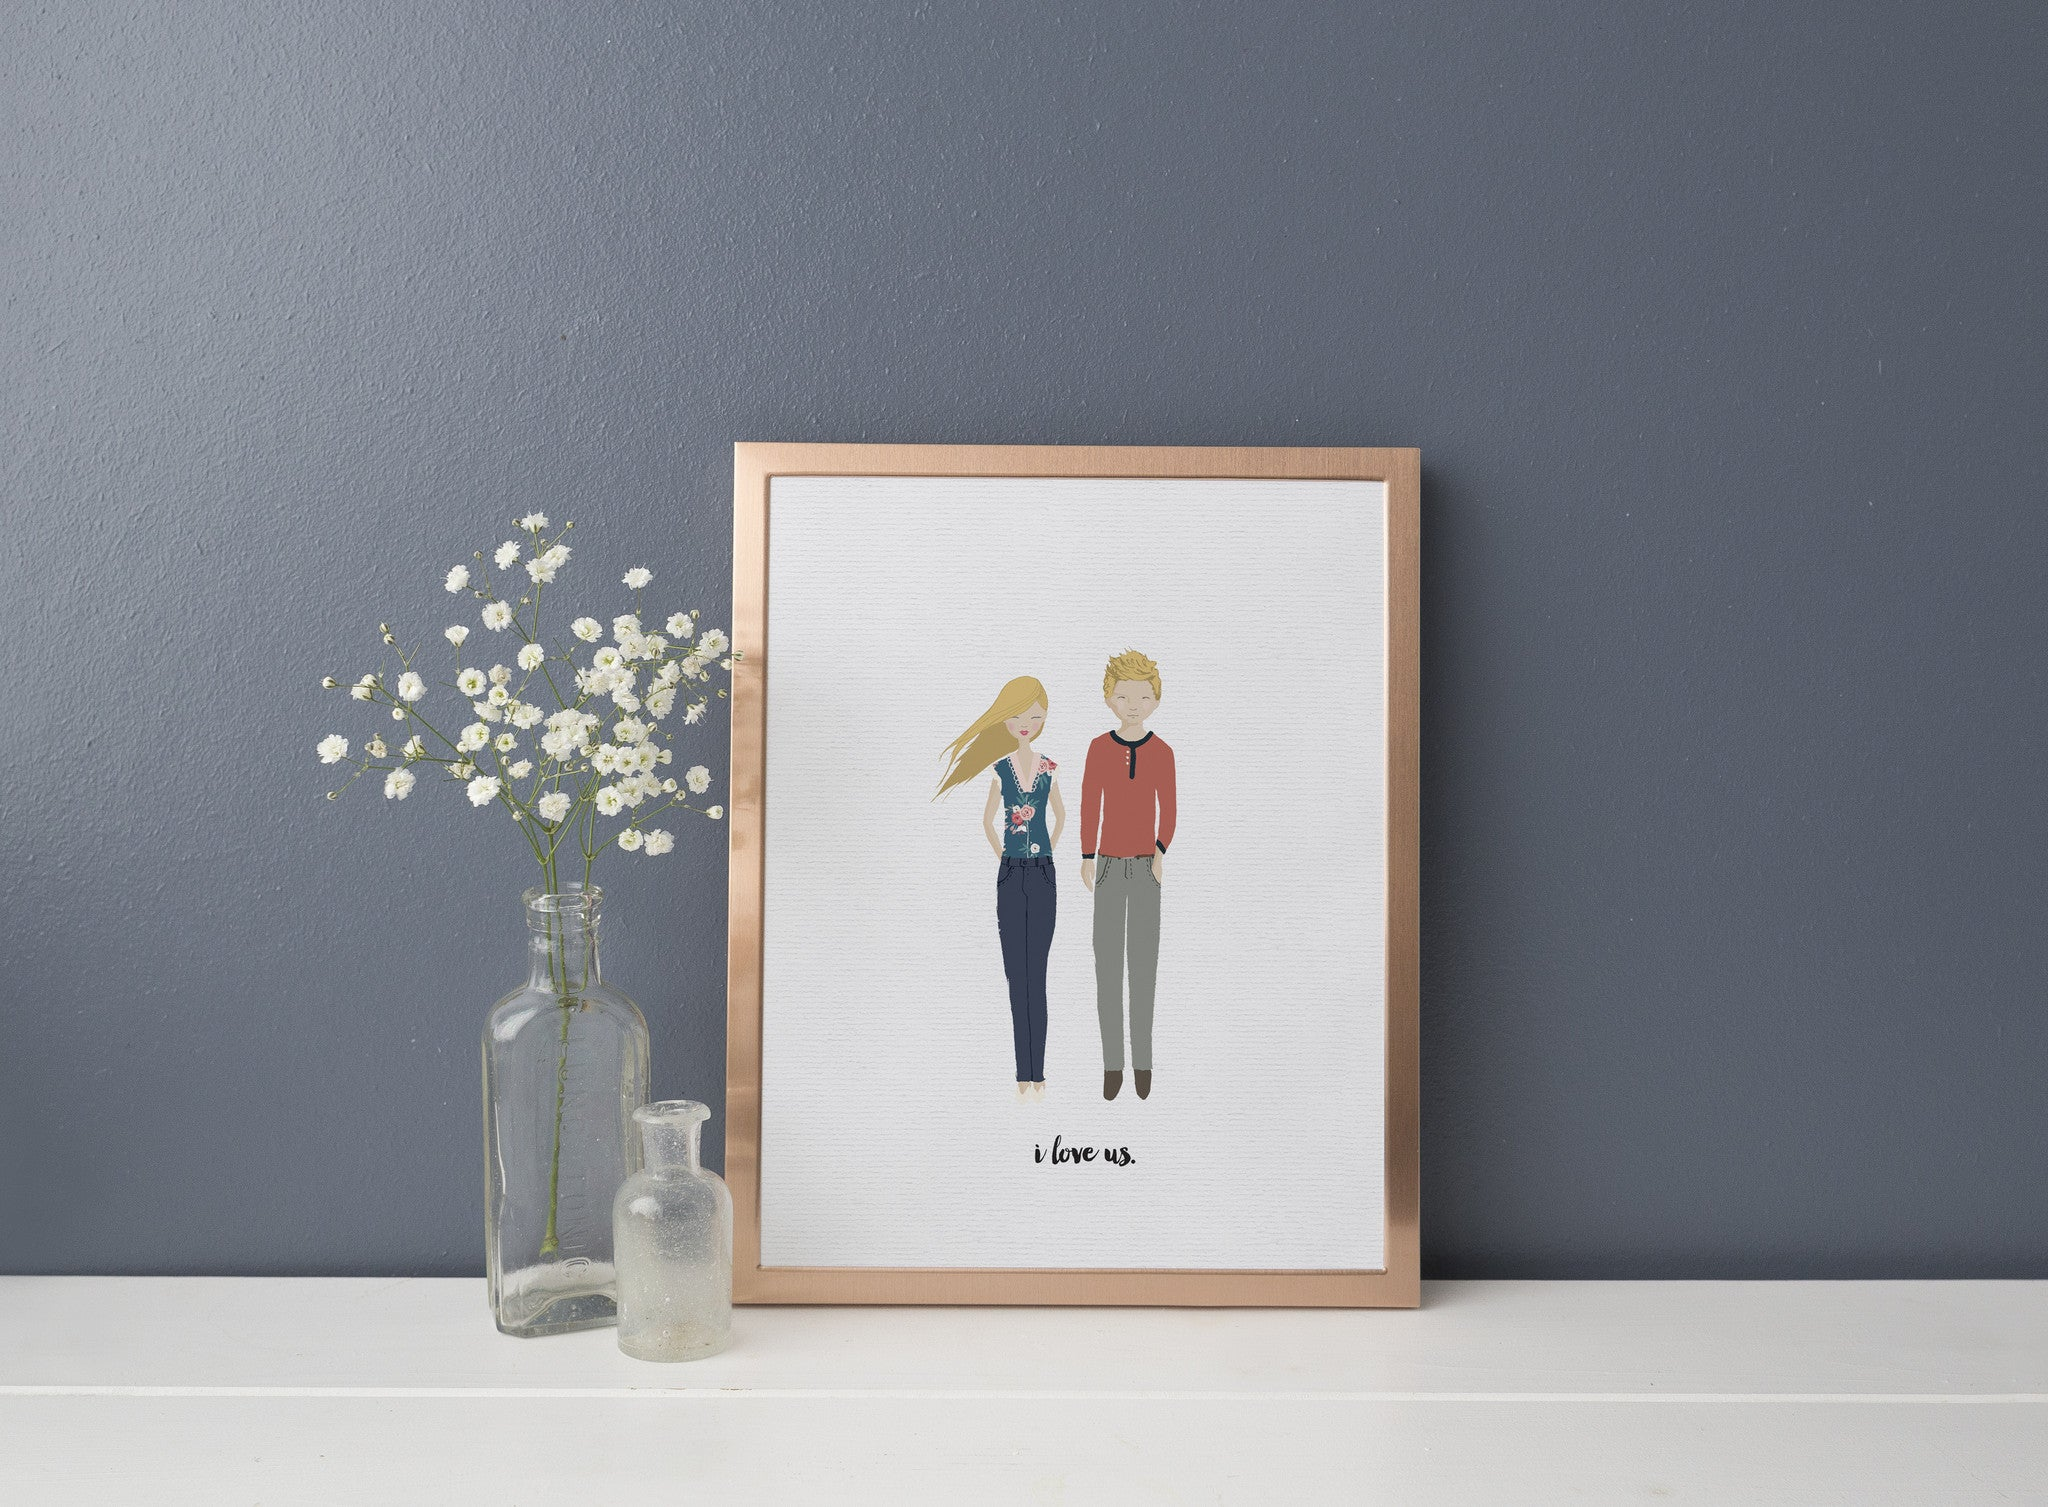 whimsical couple portrait, wedding gift, customized portrait, sale